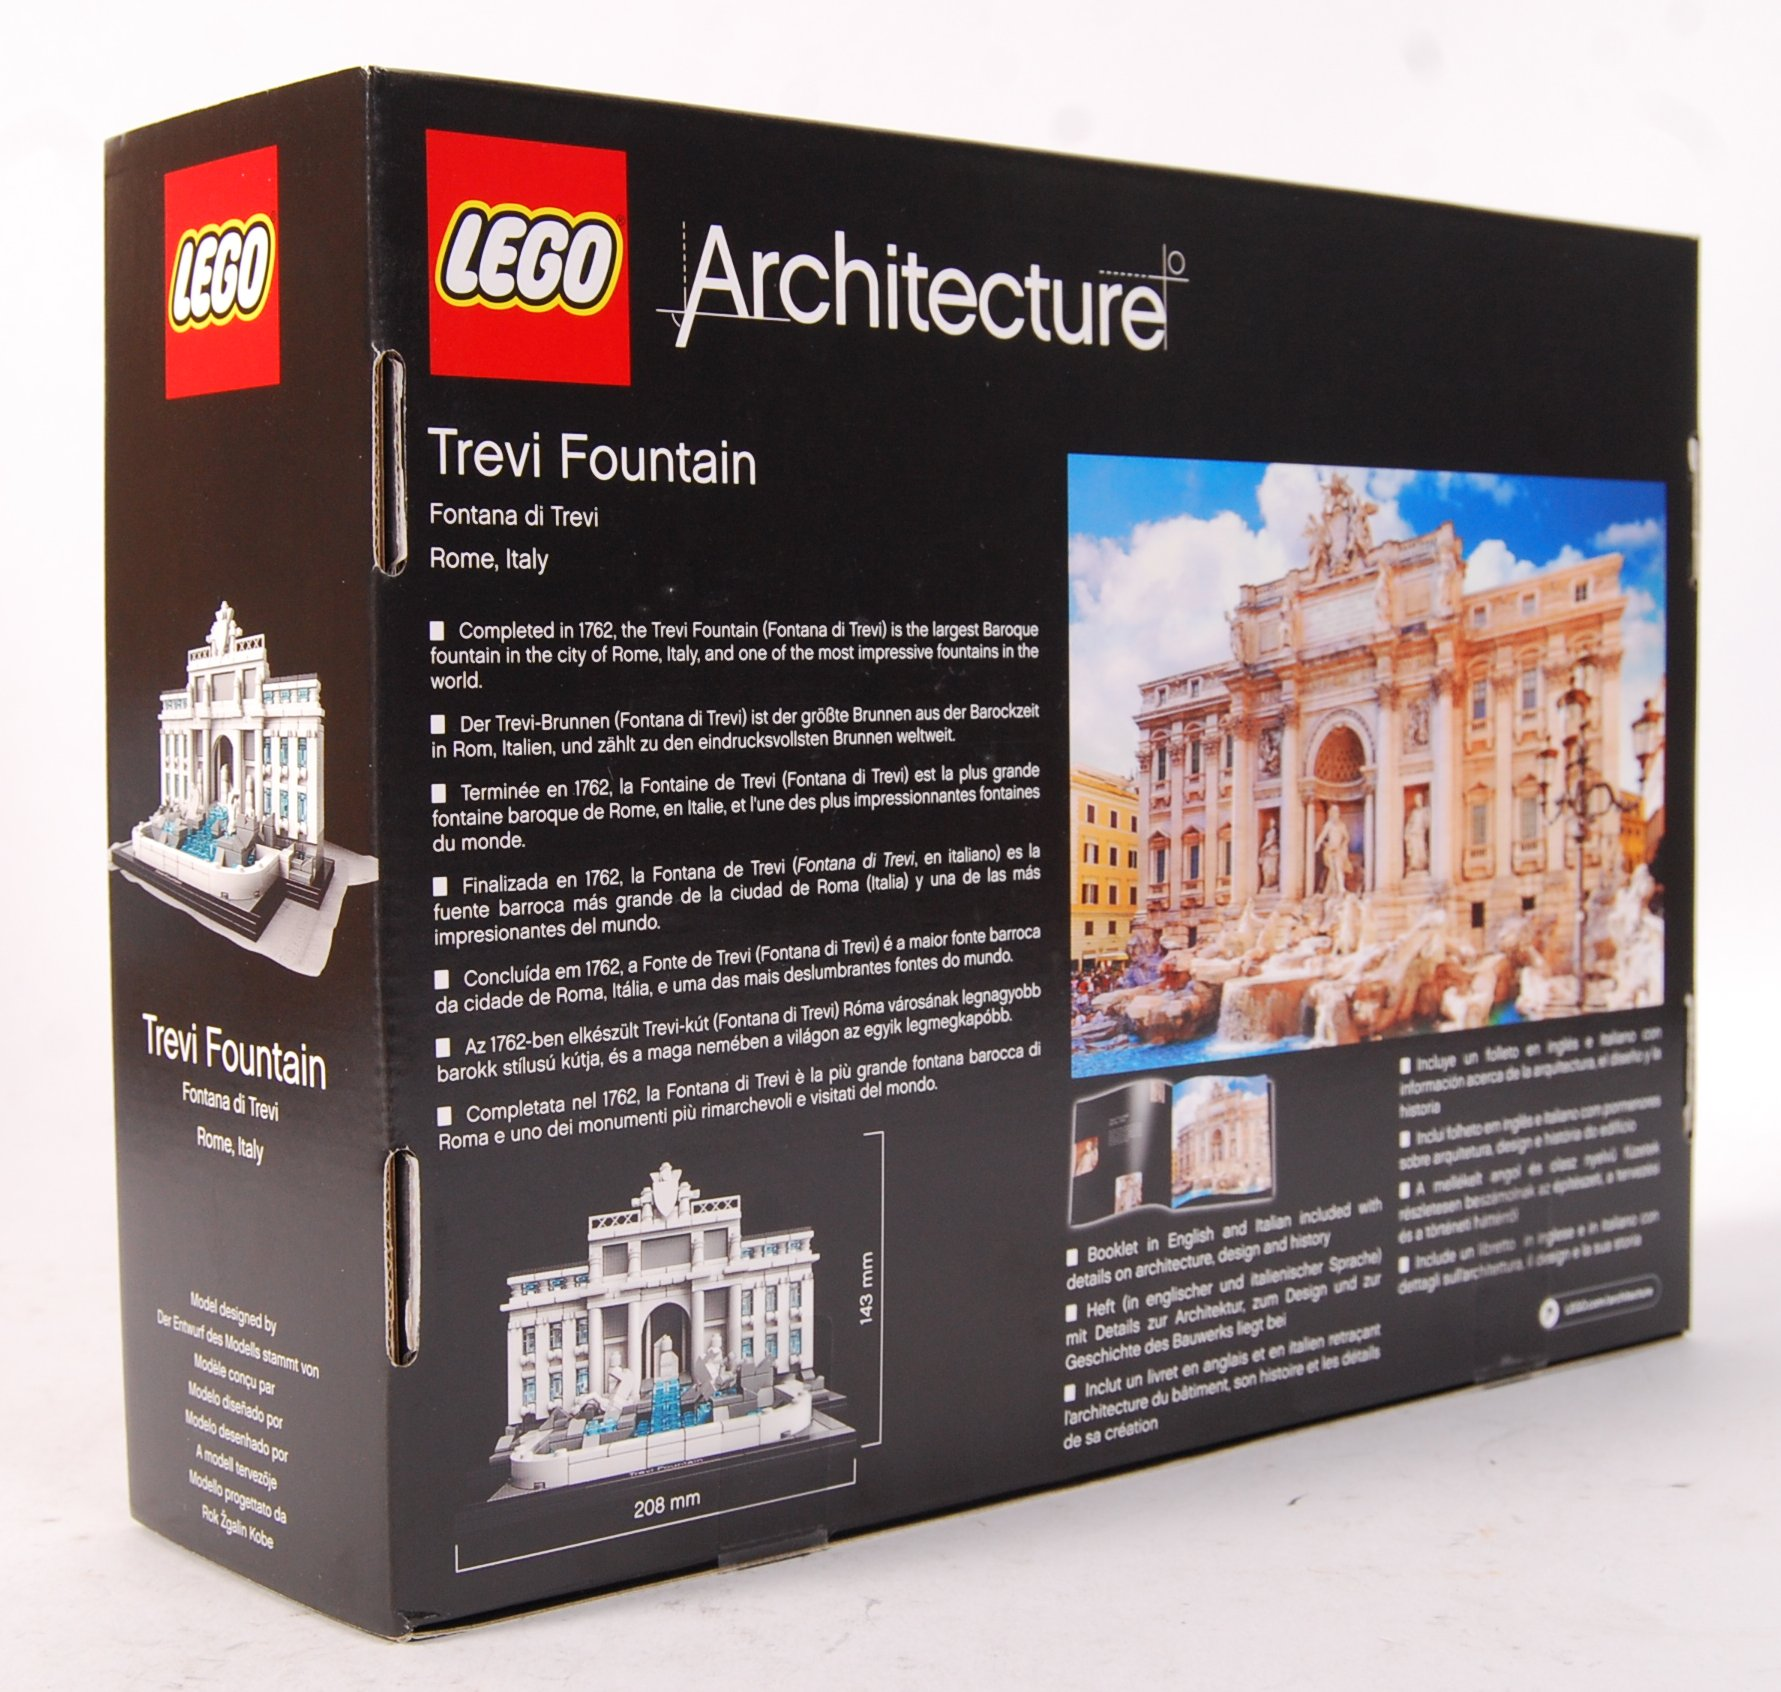 LEGO ARCHITECTURE 21020 ' TREVI FOUNTAIN ' BOXED S - Image 2 of 3